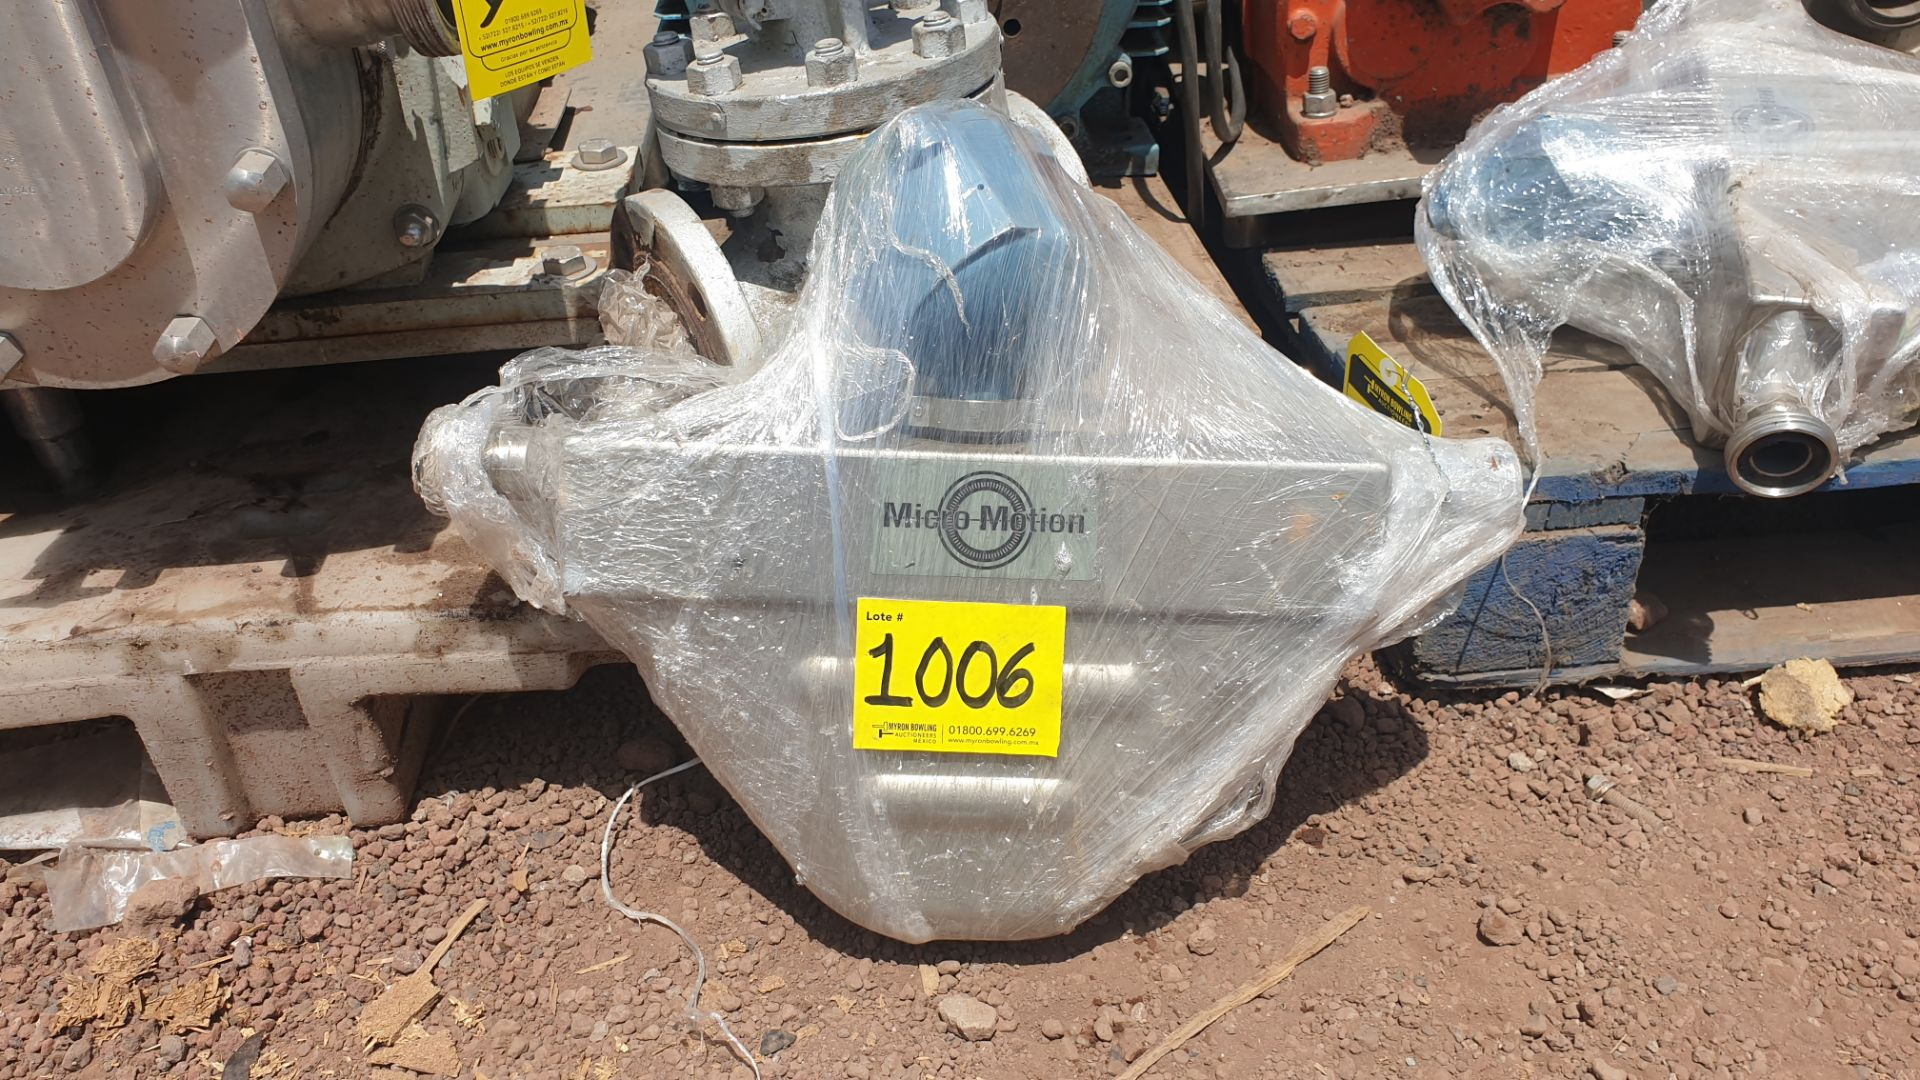 Micromotion Flow meter, model F100S230C2BMSZZZZ NS 14639520 2016 - Image 2 of 10